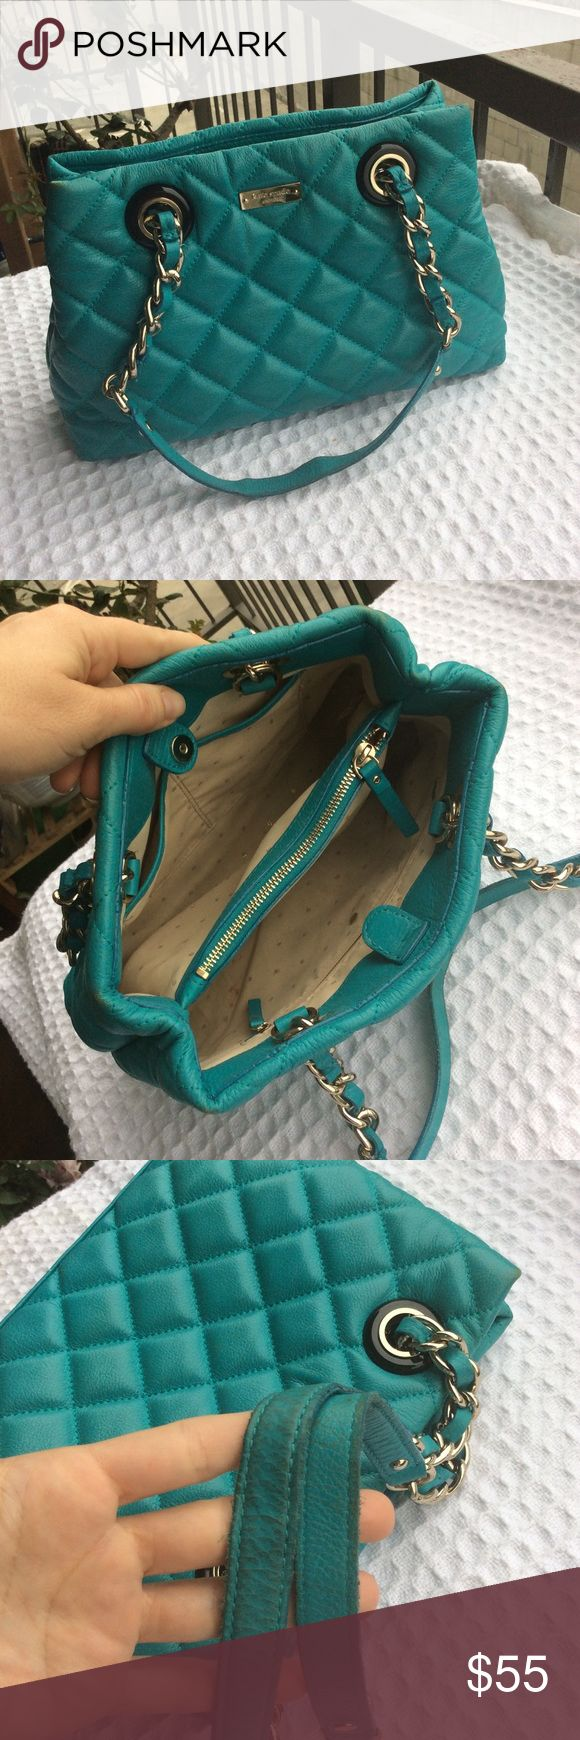 """Kate Spade ♠️ Turquoise quilt shoulder bag Turquoise quilt leather chain strap detail, the bag is in great condition inside , outside needs touch up on the corners,strap and maybe body , measures : 12"""" L x 8.5"""" H x 3.5"""" , strap drop 7.5"""" kate spade Bags Shoulder Bags"""